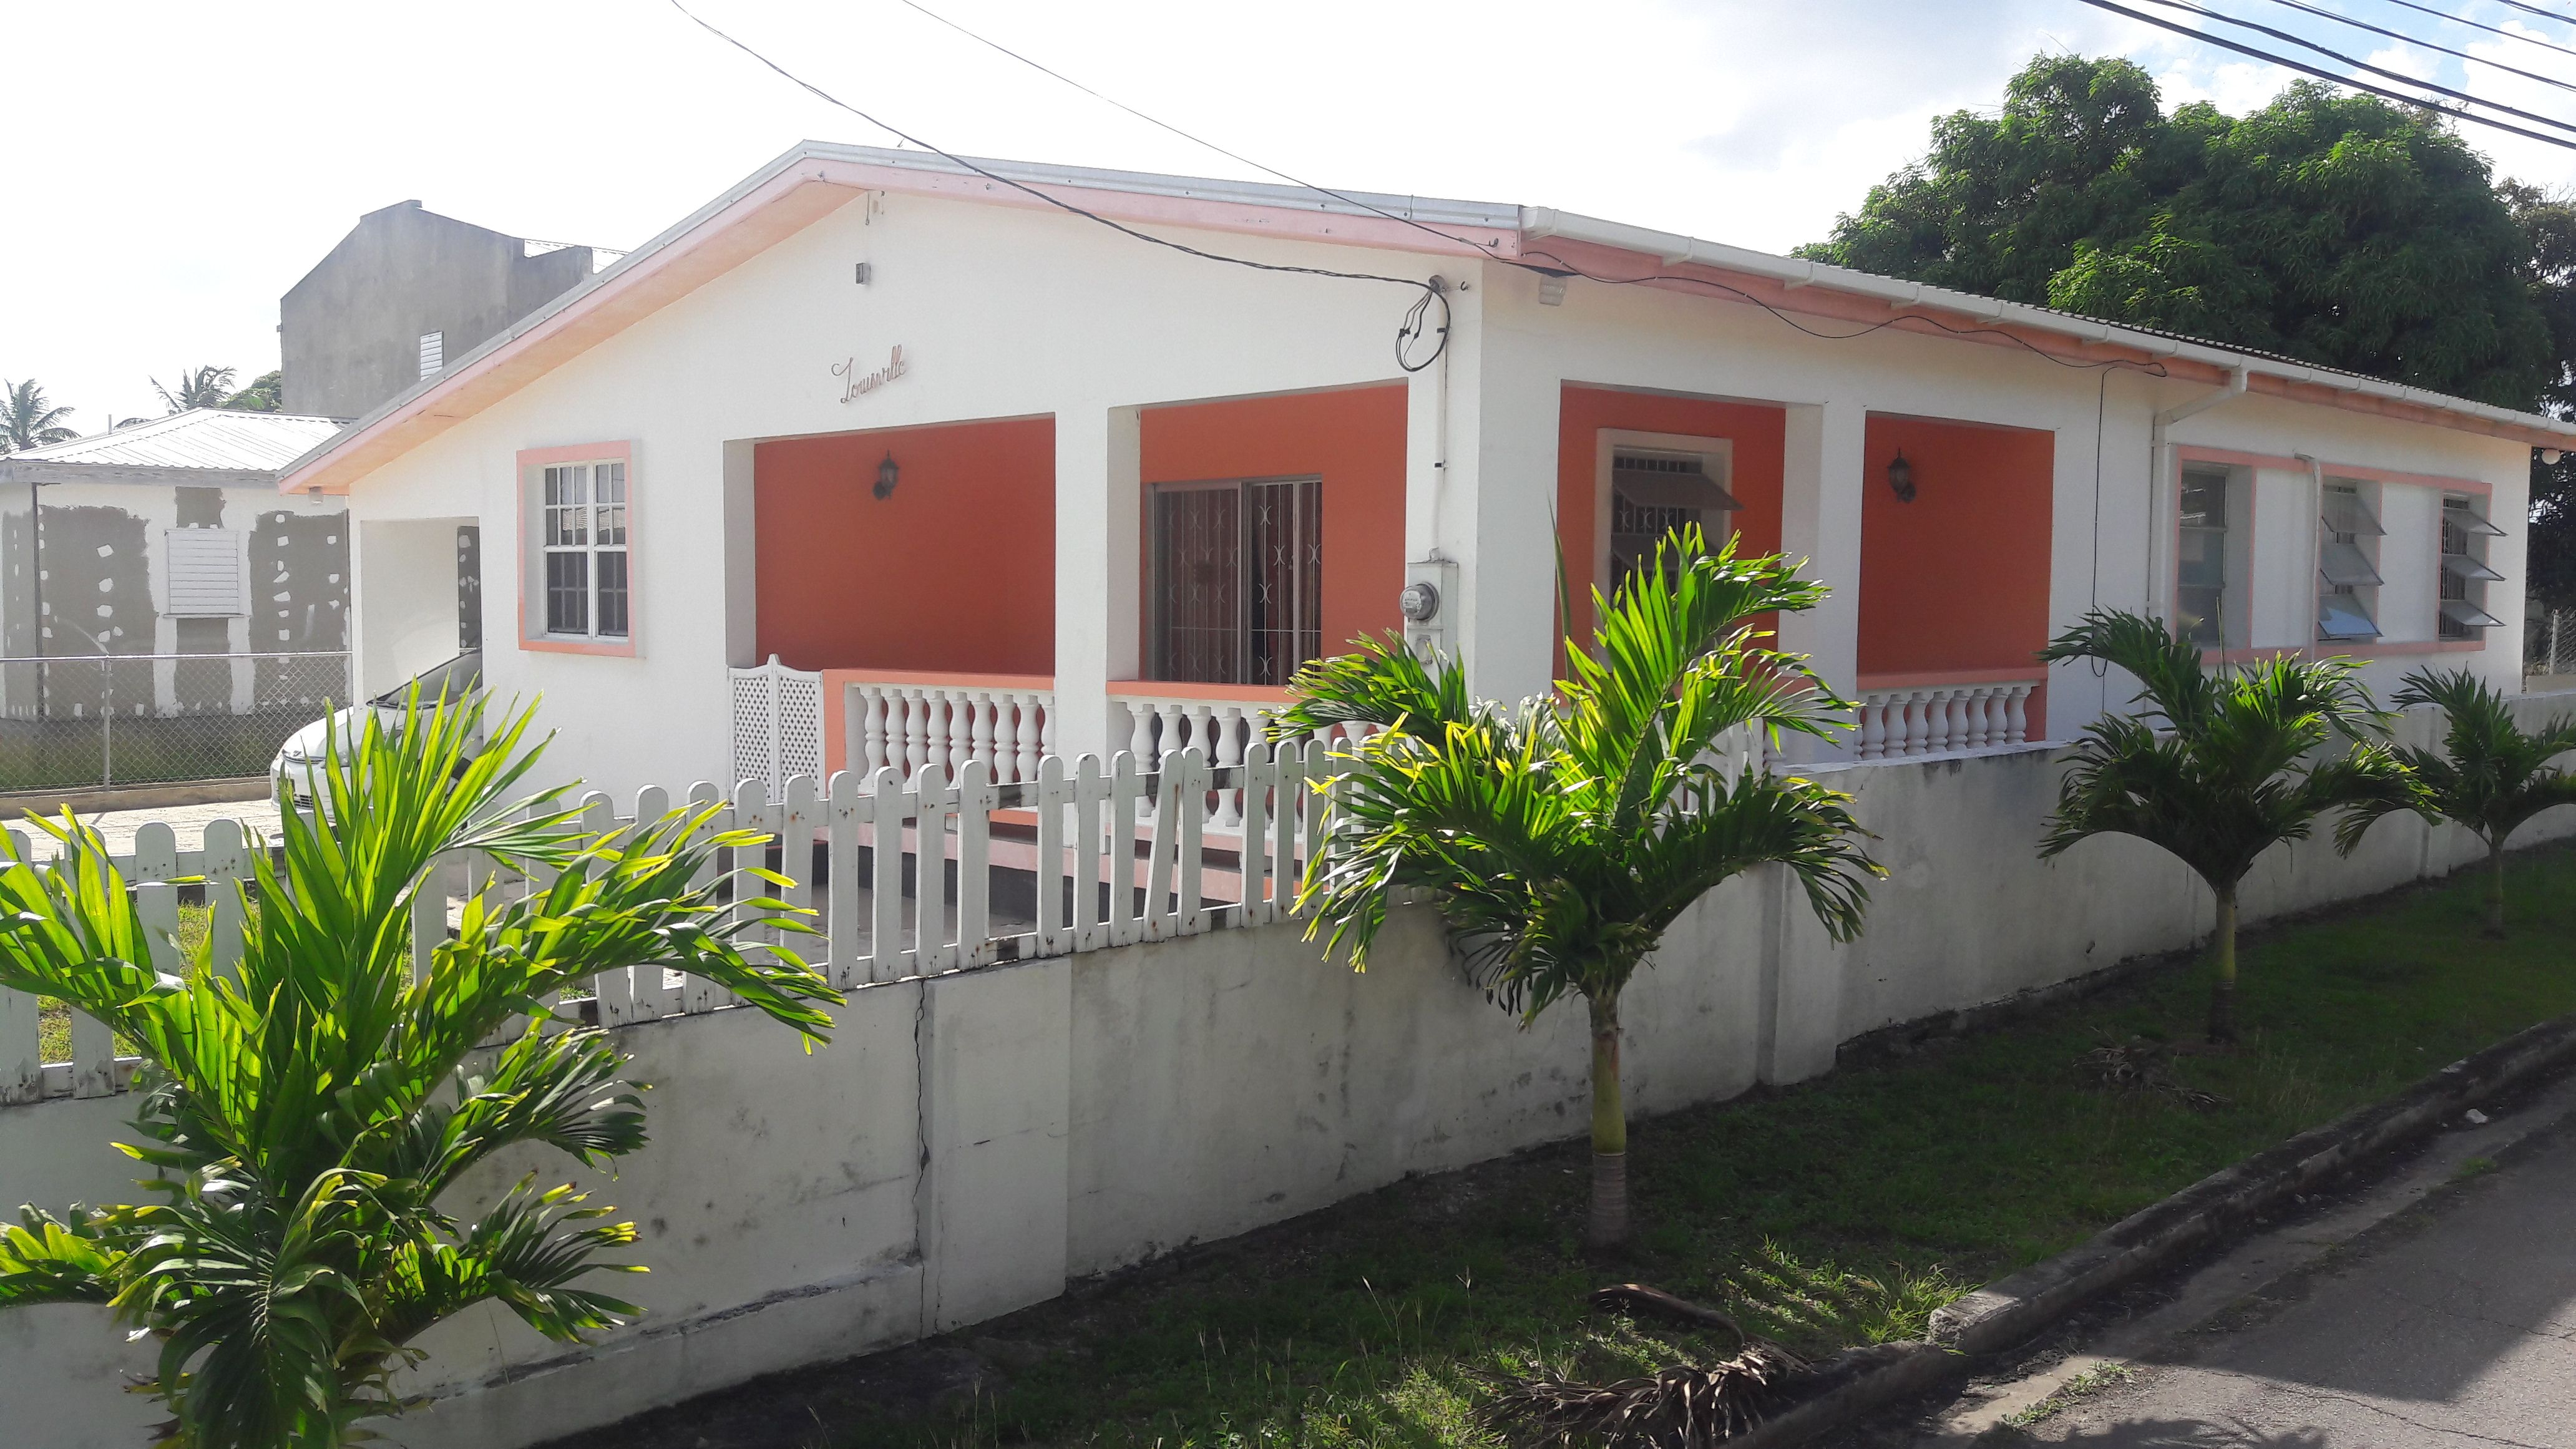 For Sale Grazettes St Michael Barbados 3 Bed 2 Bath House 1 050 Sq Ft Floor Space On 1 850 Sq Ft L One Bedroom Apartment New Mexico Homes Renting A House